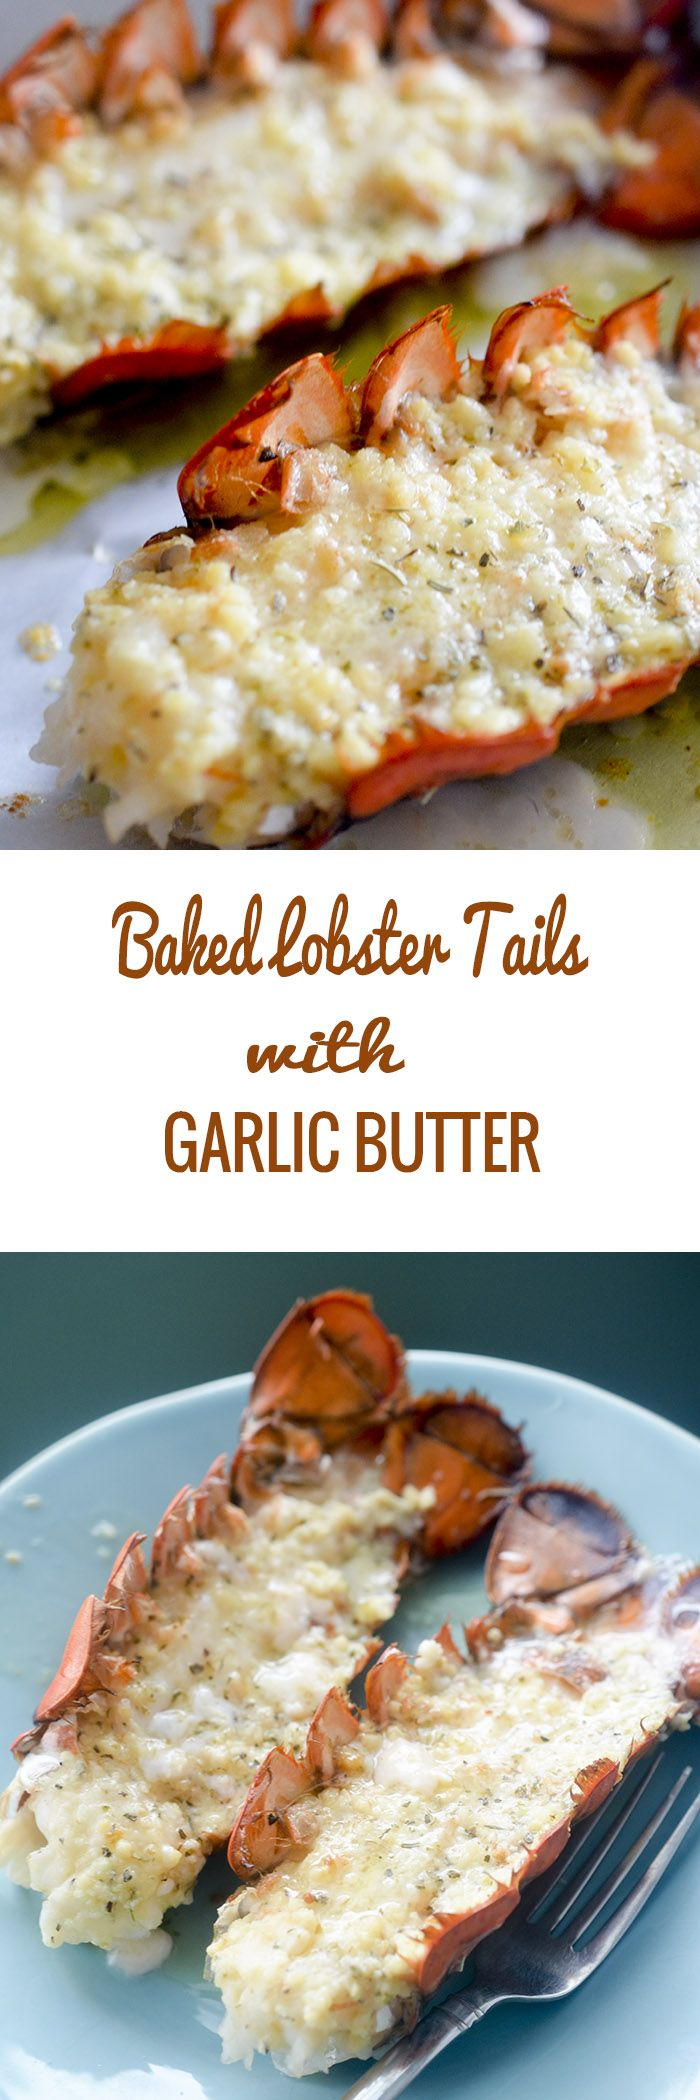 .~Baked Lobster Tails with Garlic Butter #seafood - Recipe Diaries~.